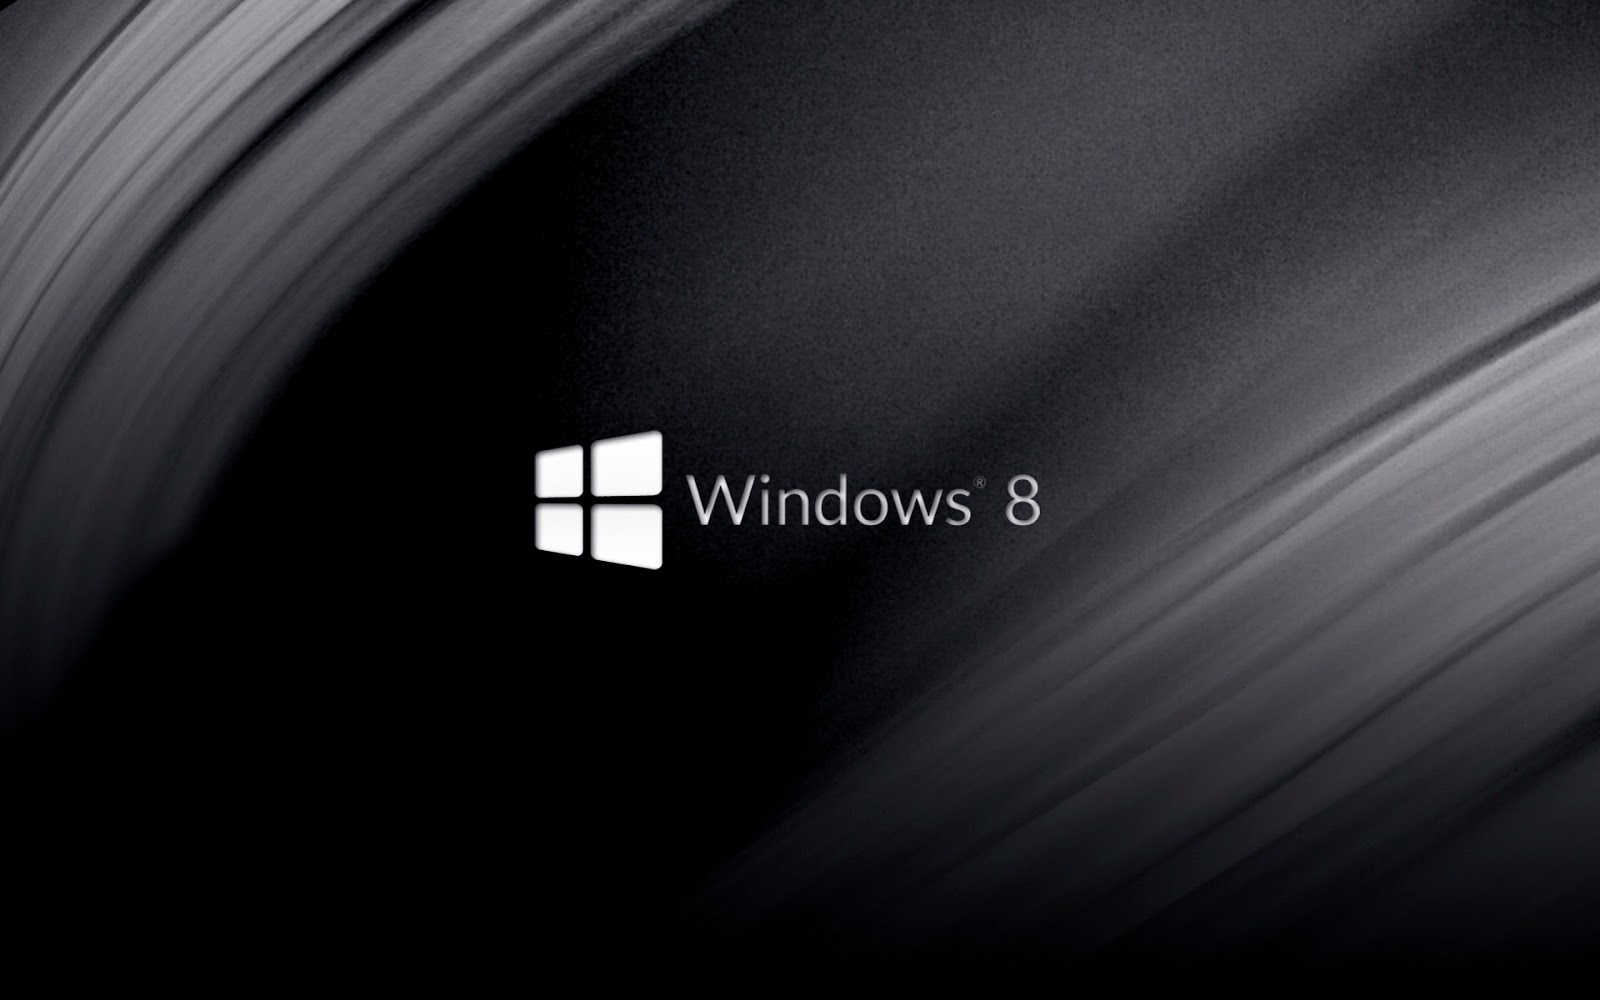 Cool Convertibles Under 10000 Free Download For Windows 8 64bit |TOP| 1799077